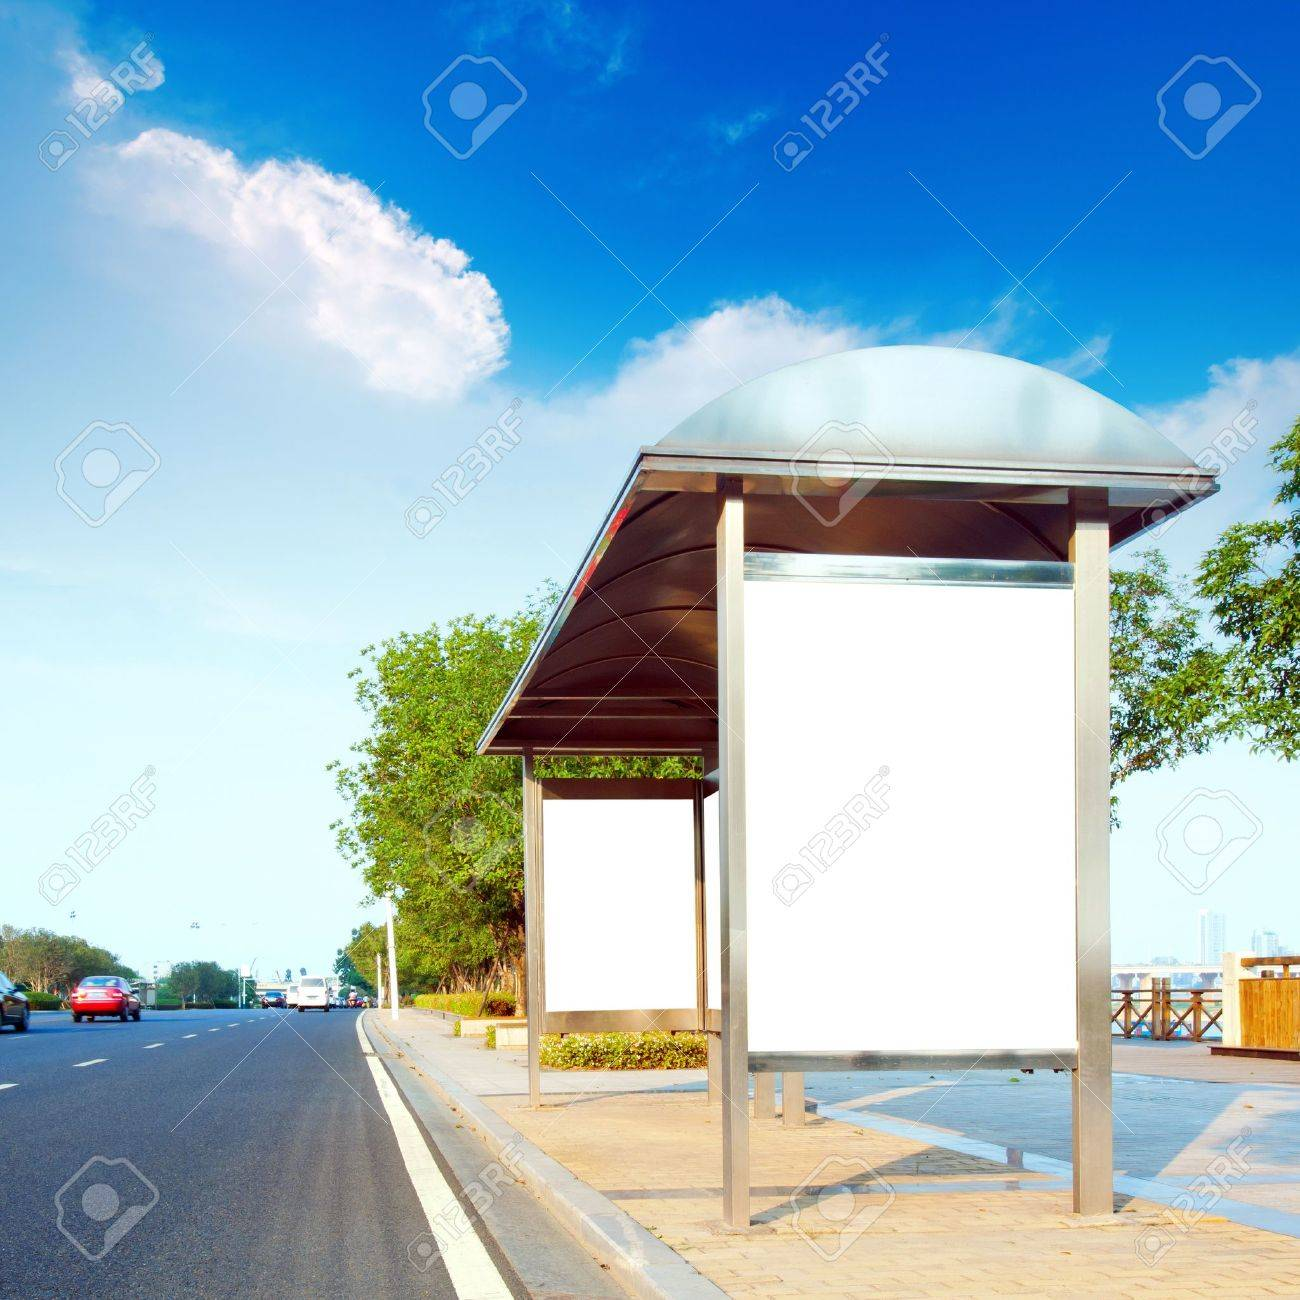 This is for advertisers to place ad copy samples on a bus shelter Stock Photo - 10874319